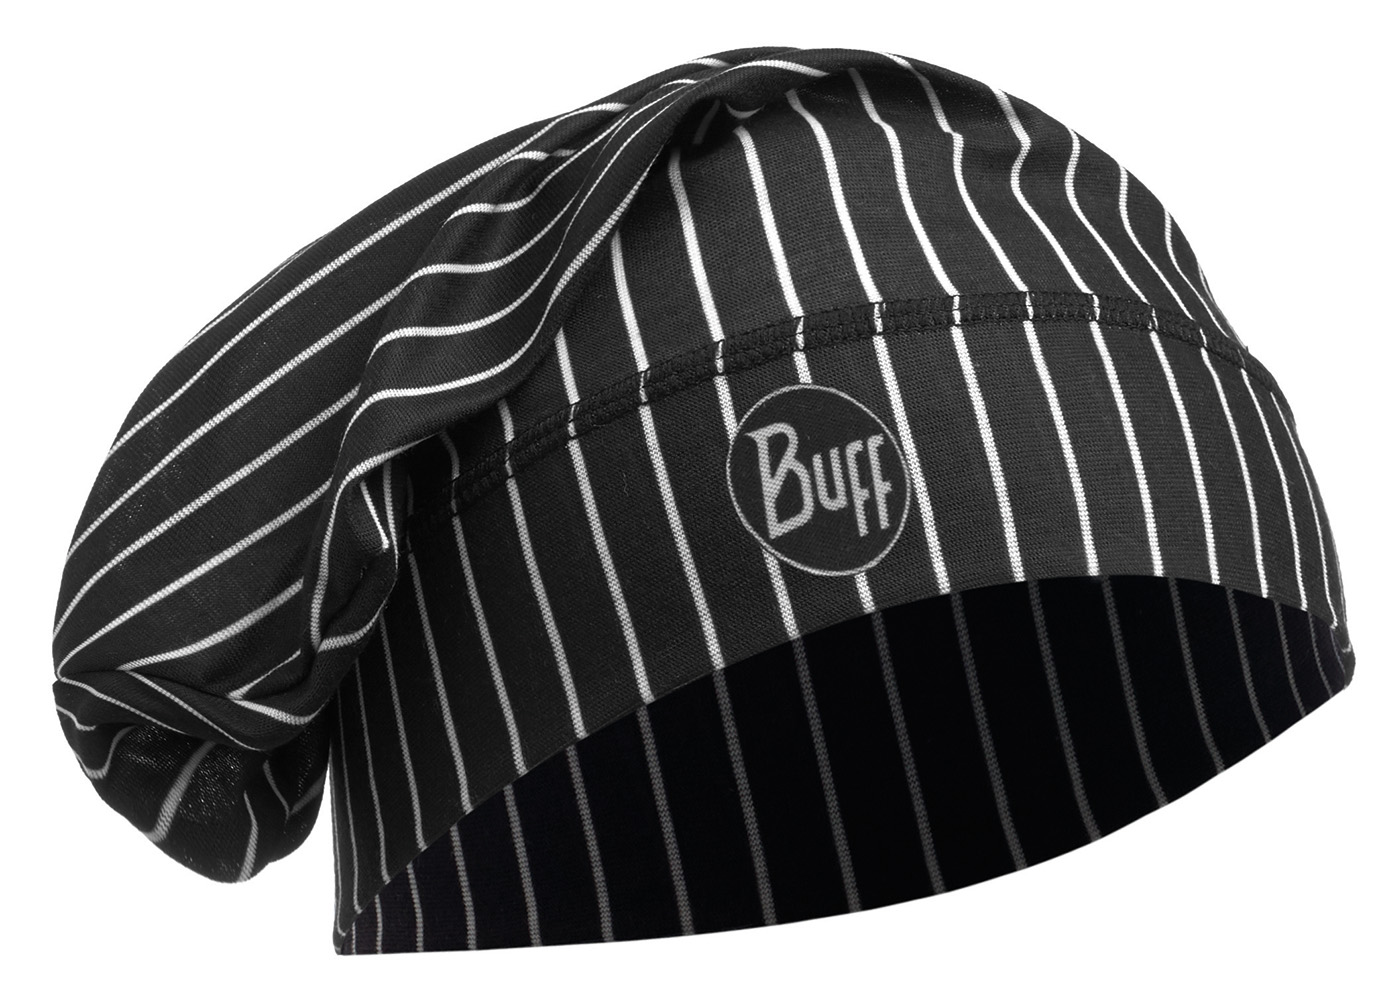 Chef Hat Collection · BUFF hue · Til kokke/køkken/catering branchen